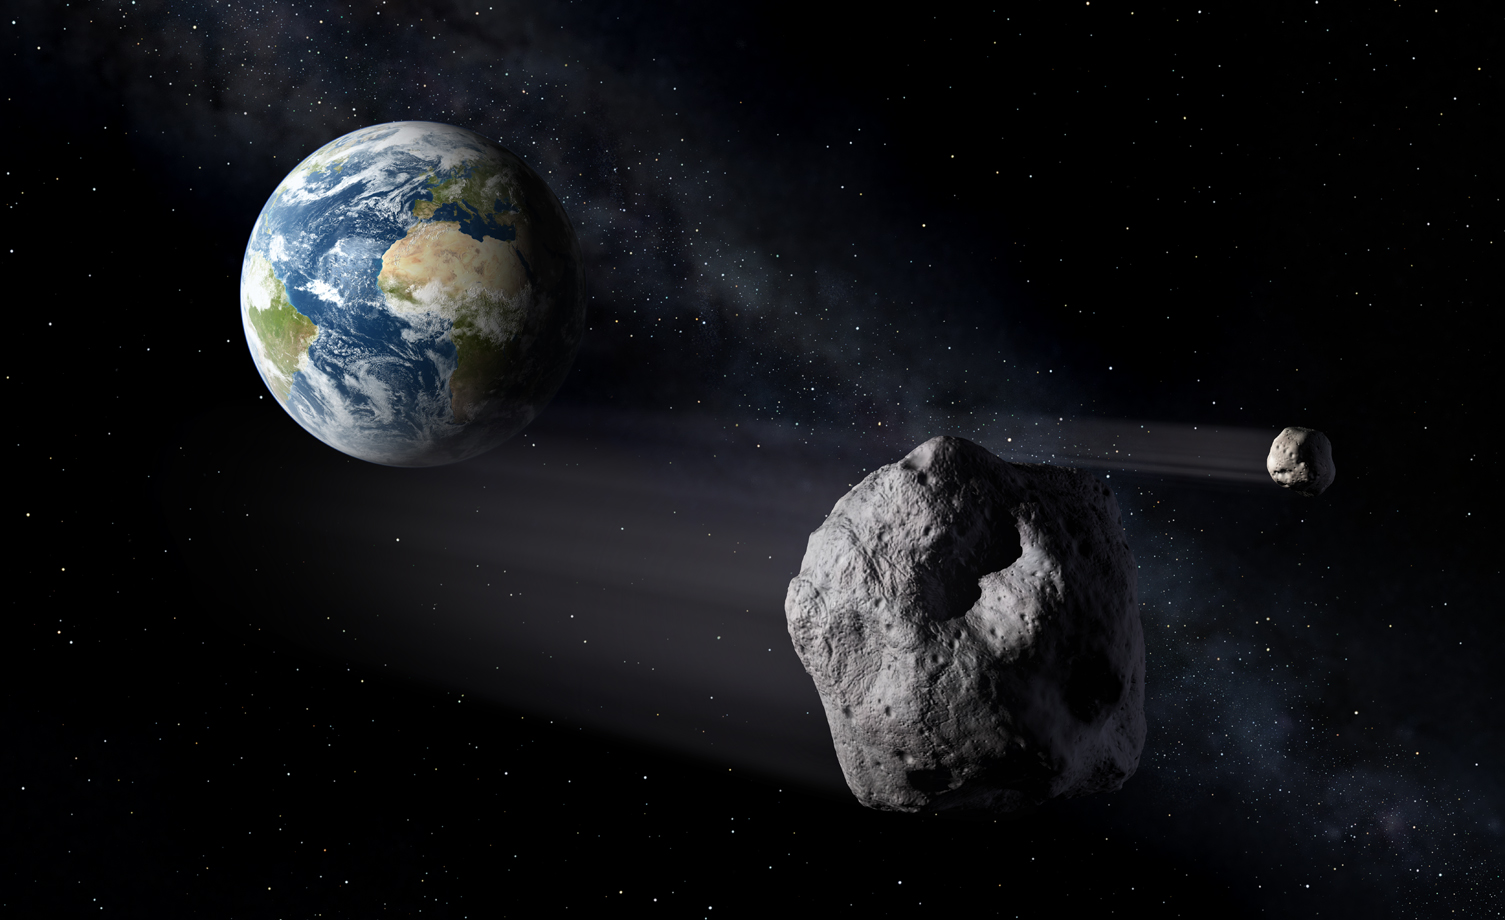 Fly Me to the Minimoon: Tiny Asteroids Near Earth Touted for Human Exploration